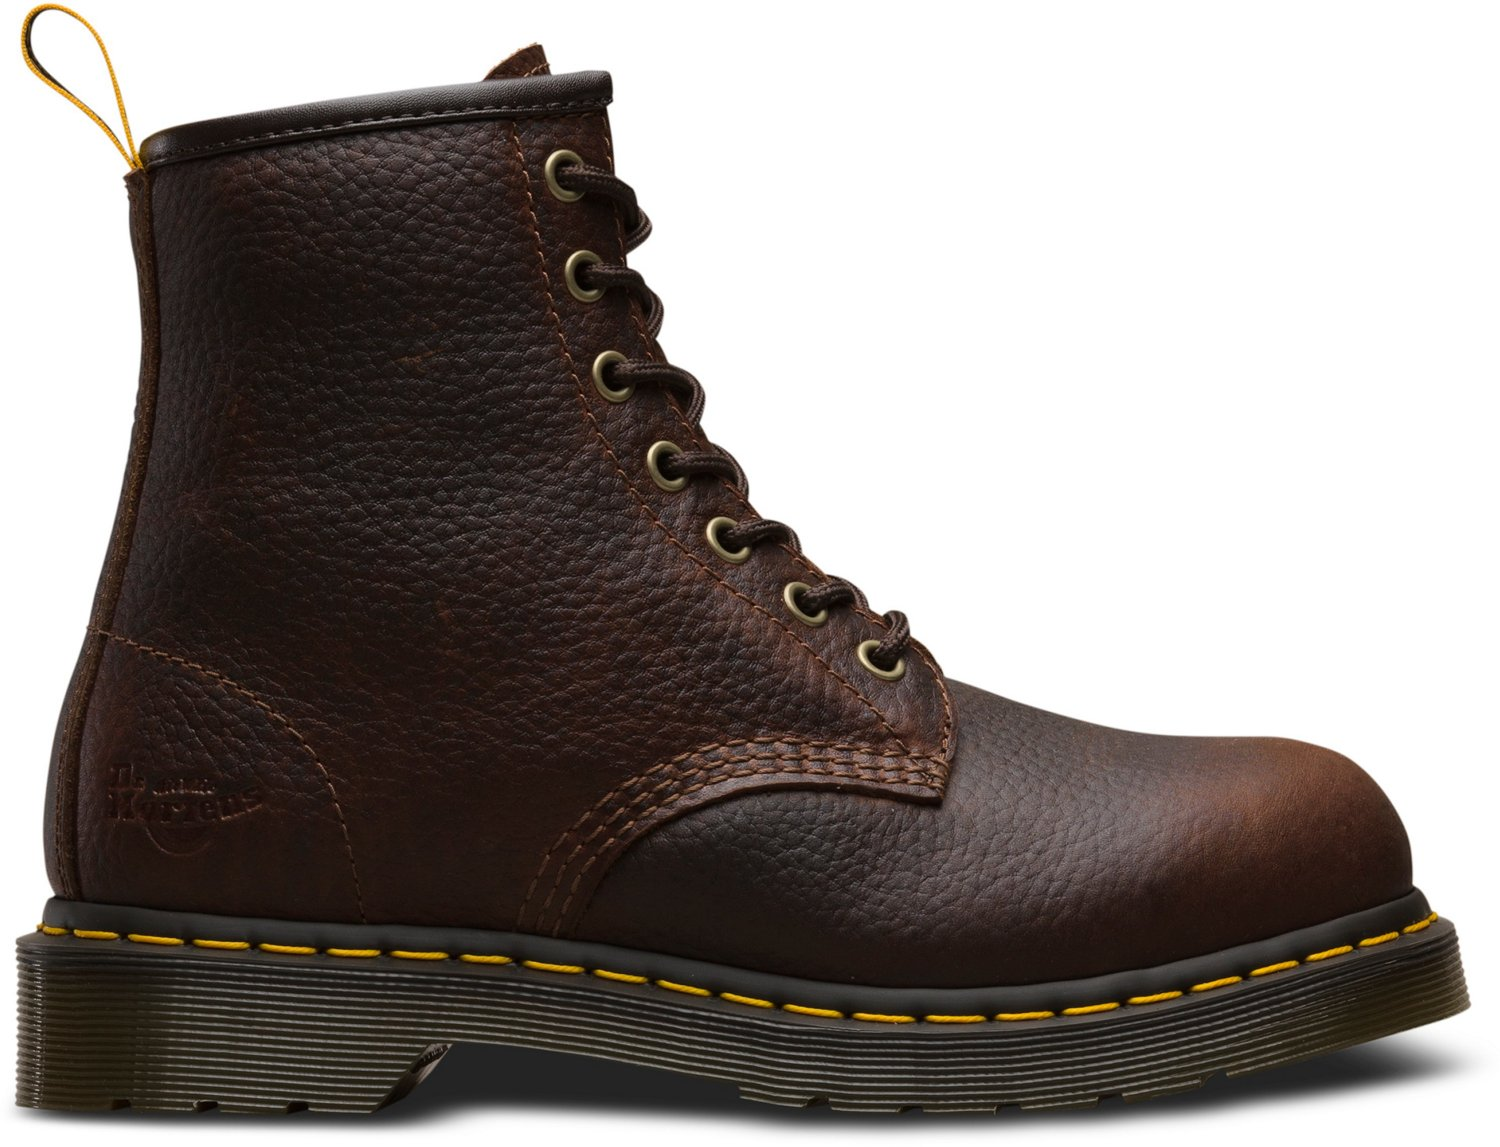 Dr. Martens Women s Maple Steel-Toe Work Boots  66d10d2bf